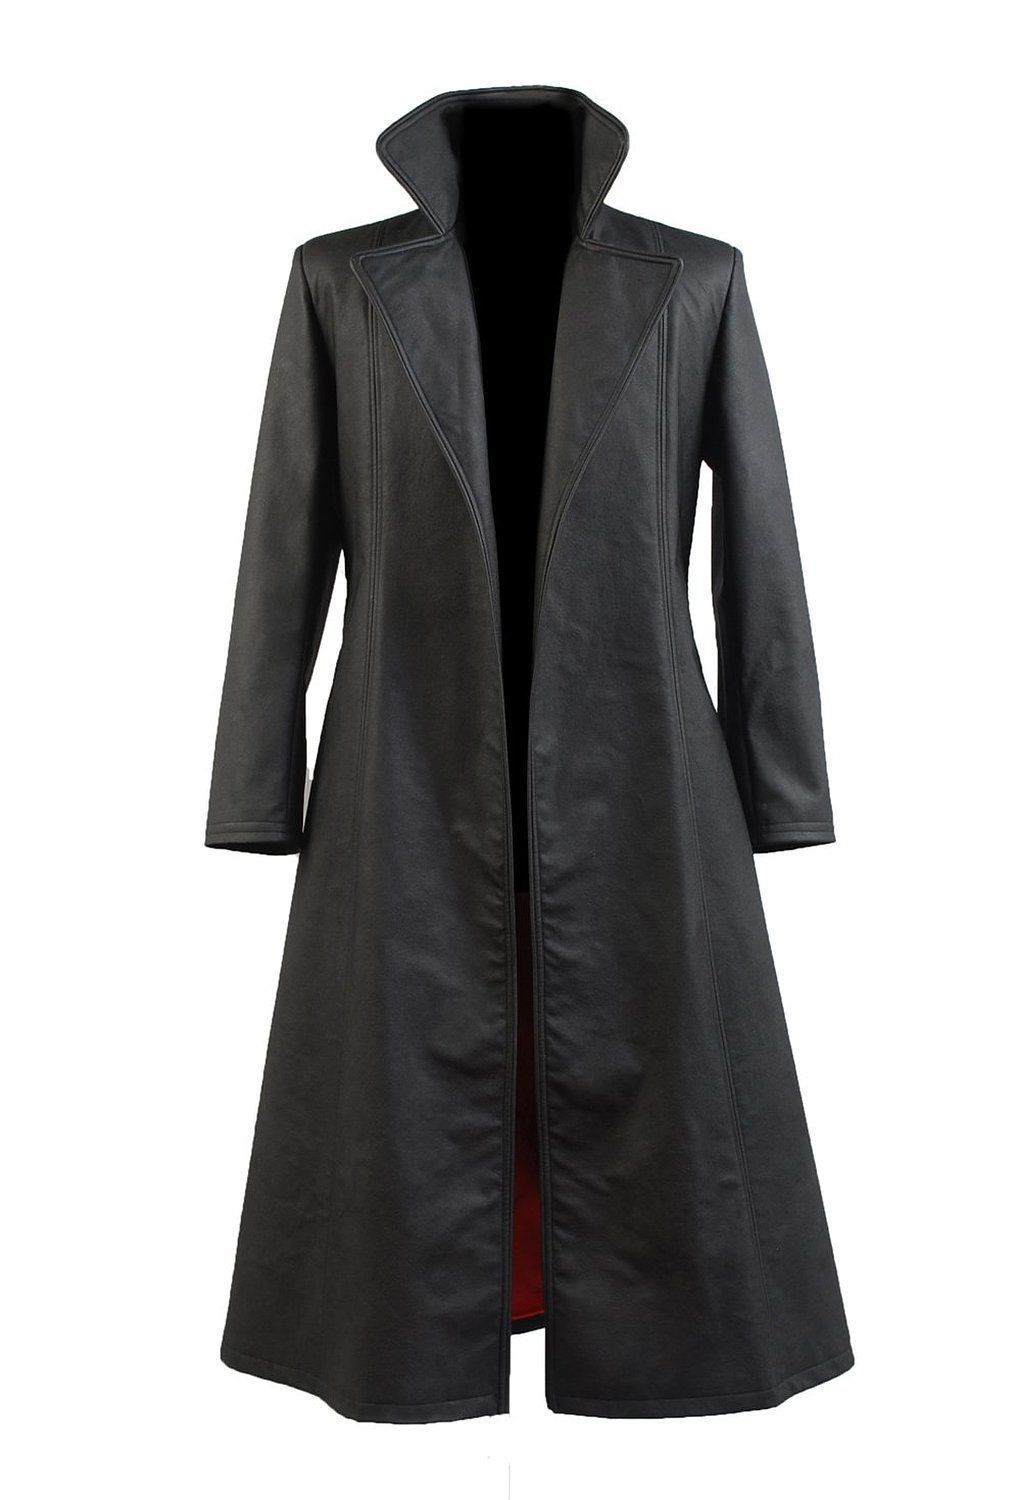 Wesley Snipes Blade Leather Trench Coat - Filmstaroutfits.com